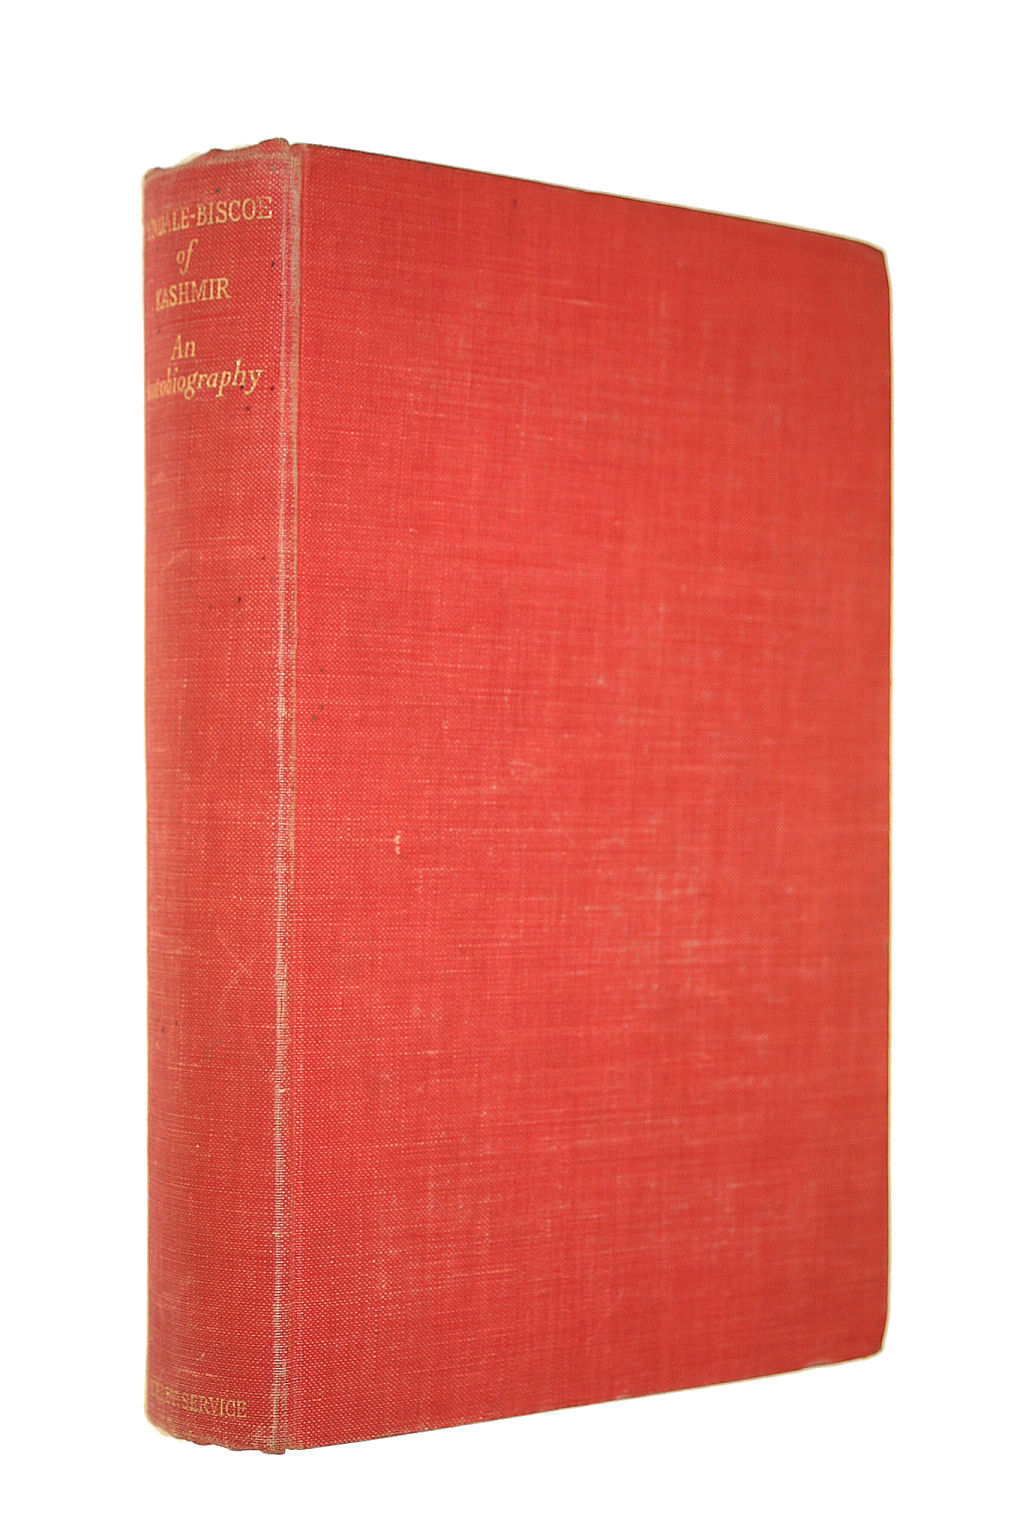 Image for Tyndale-Biscoe Of Kashmir: An Autobiography